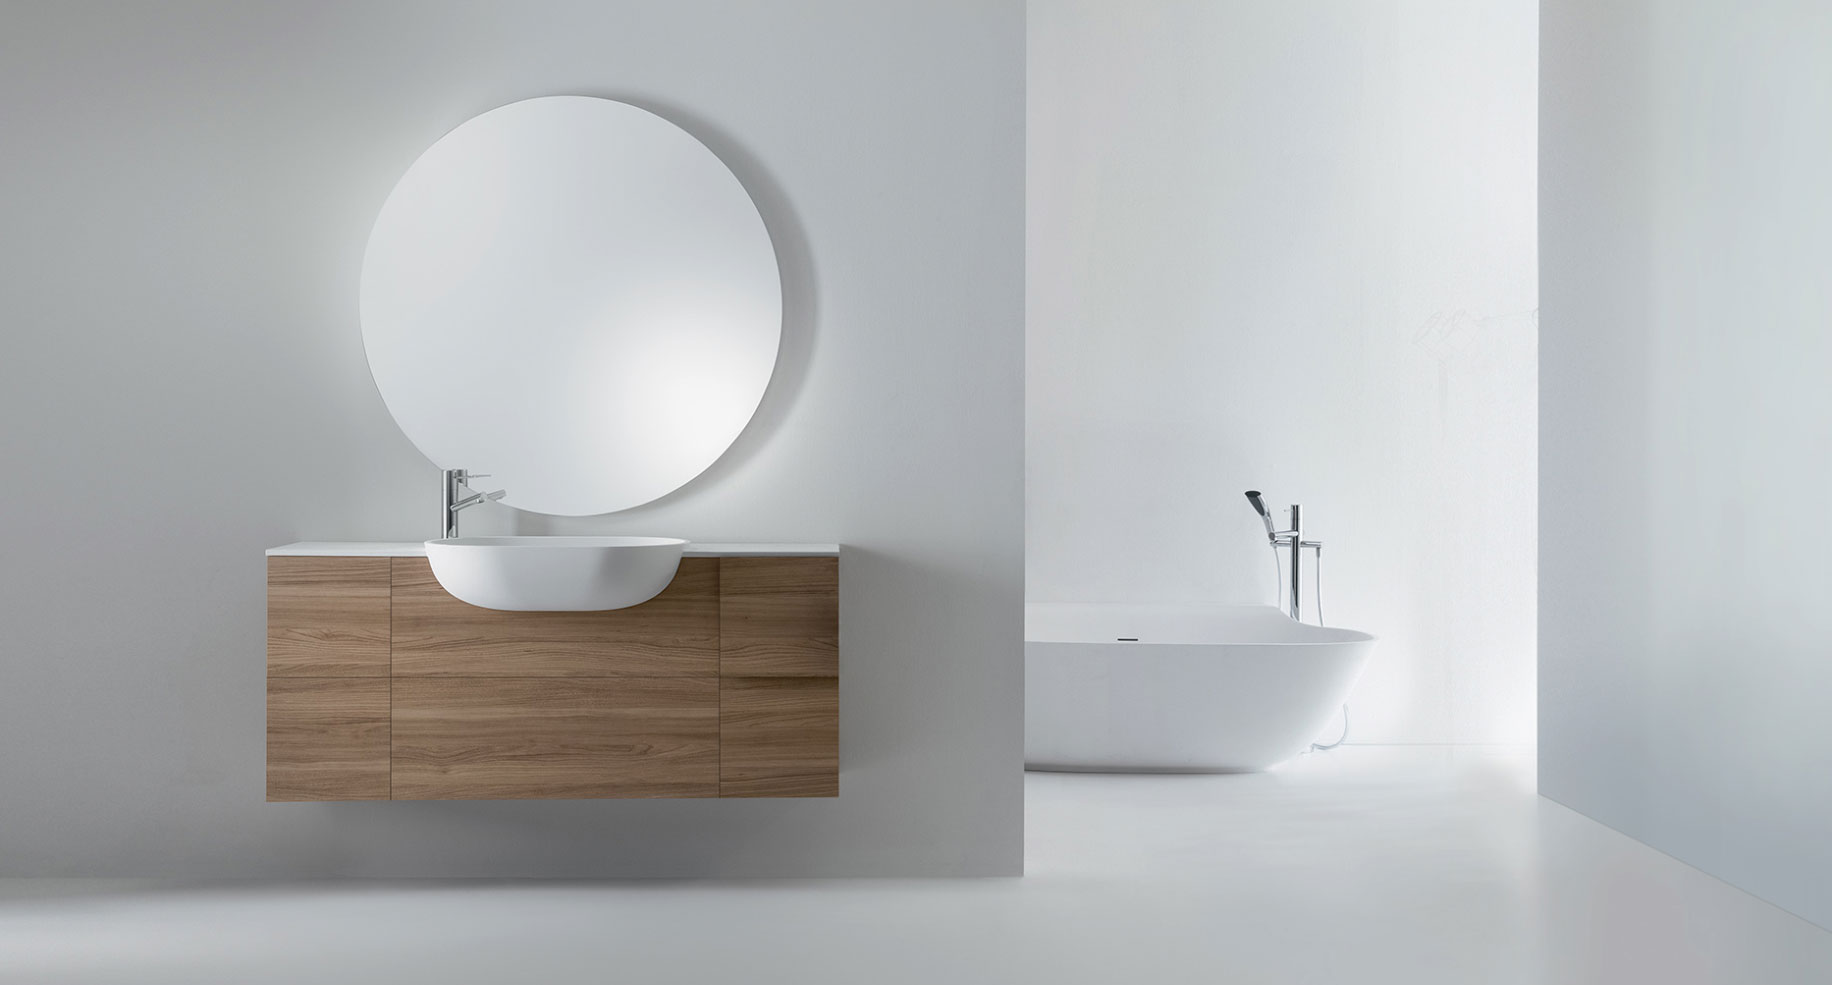 Floating wooden bathroom vanity with circular mirror and modern tub design